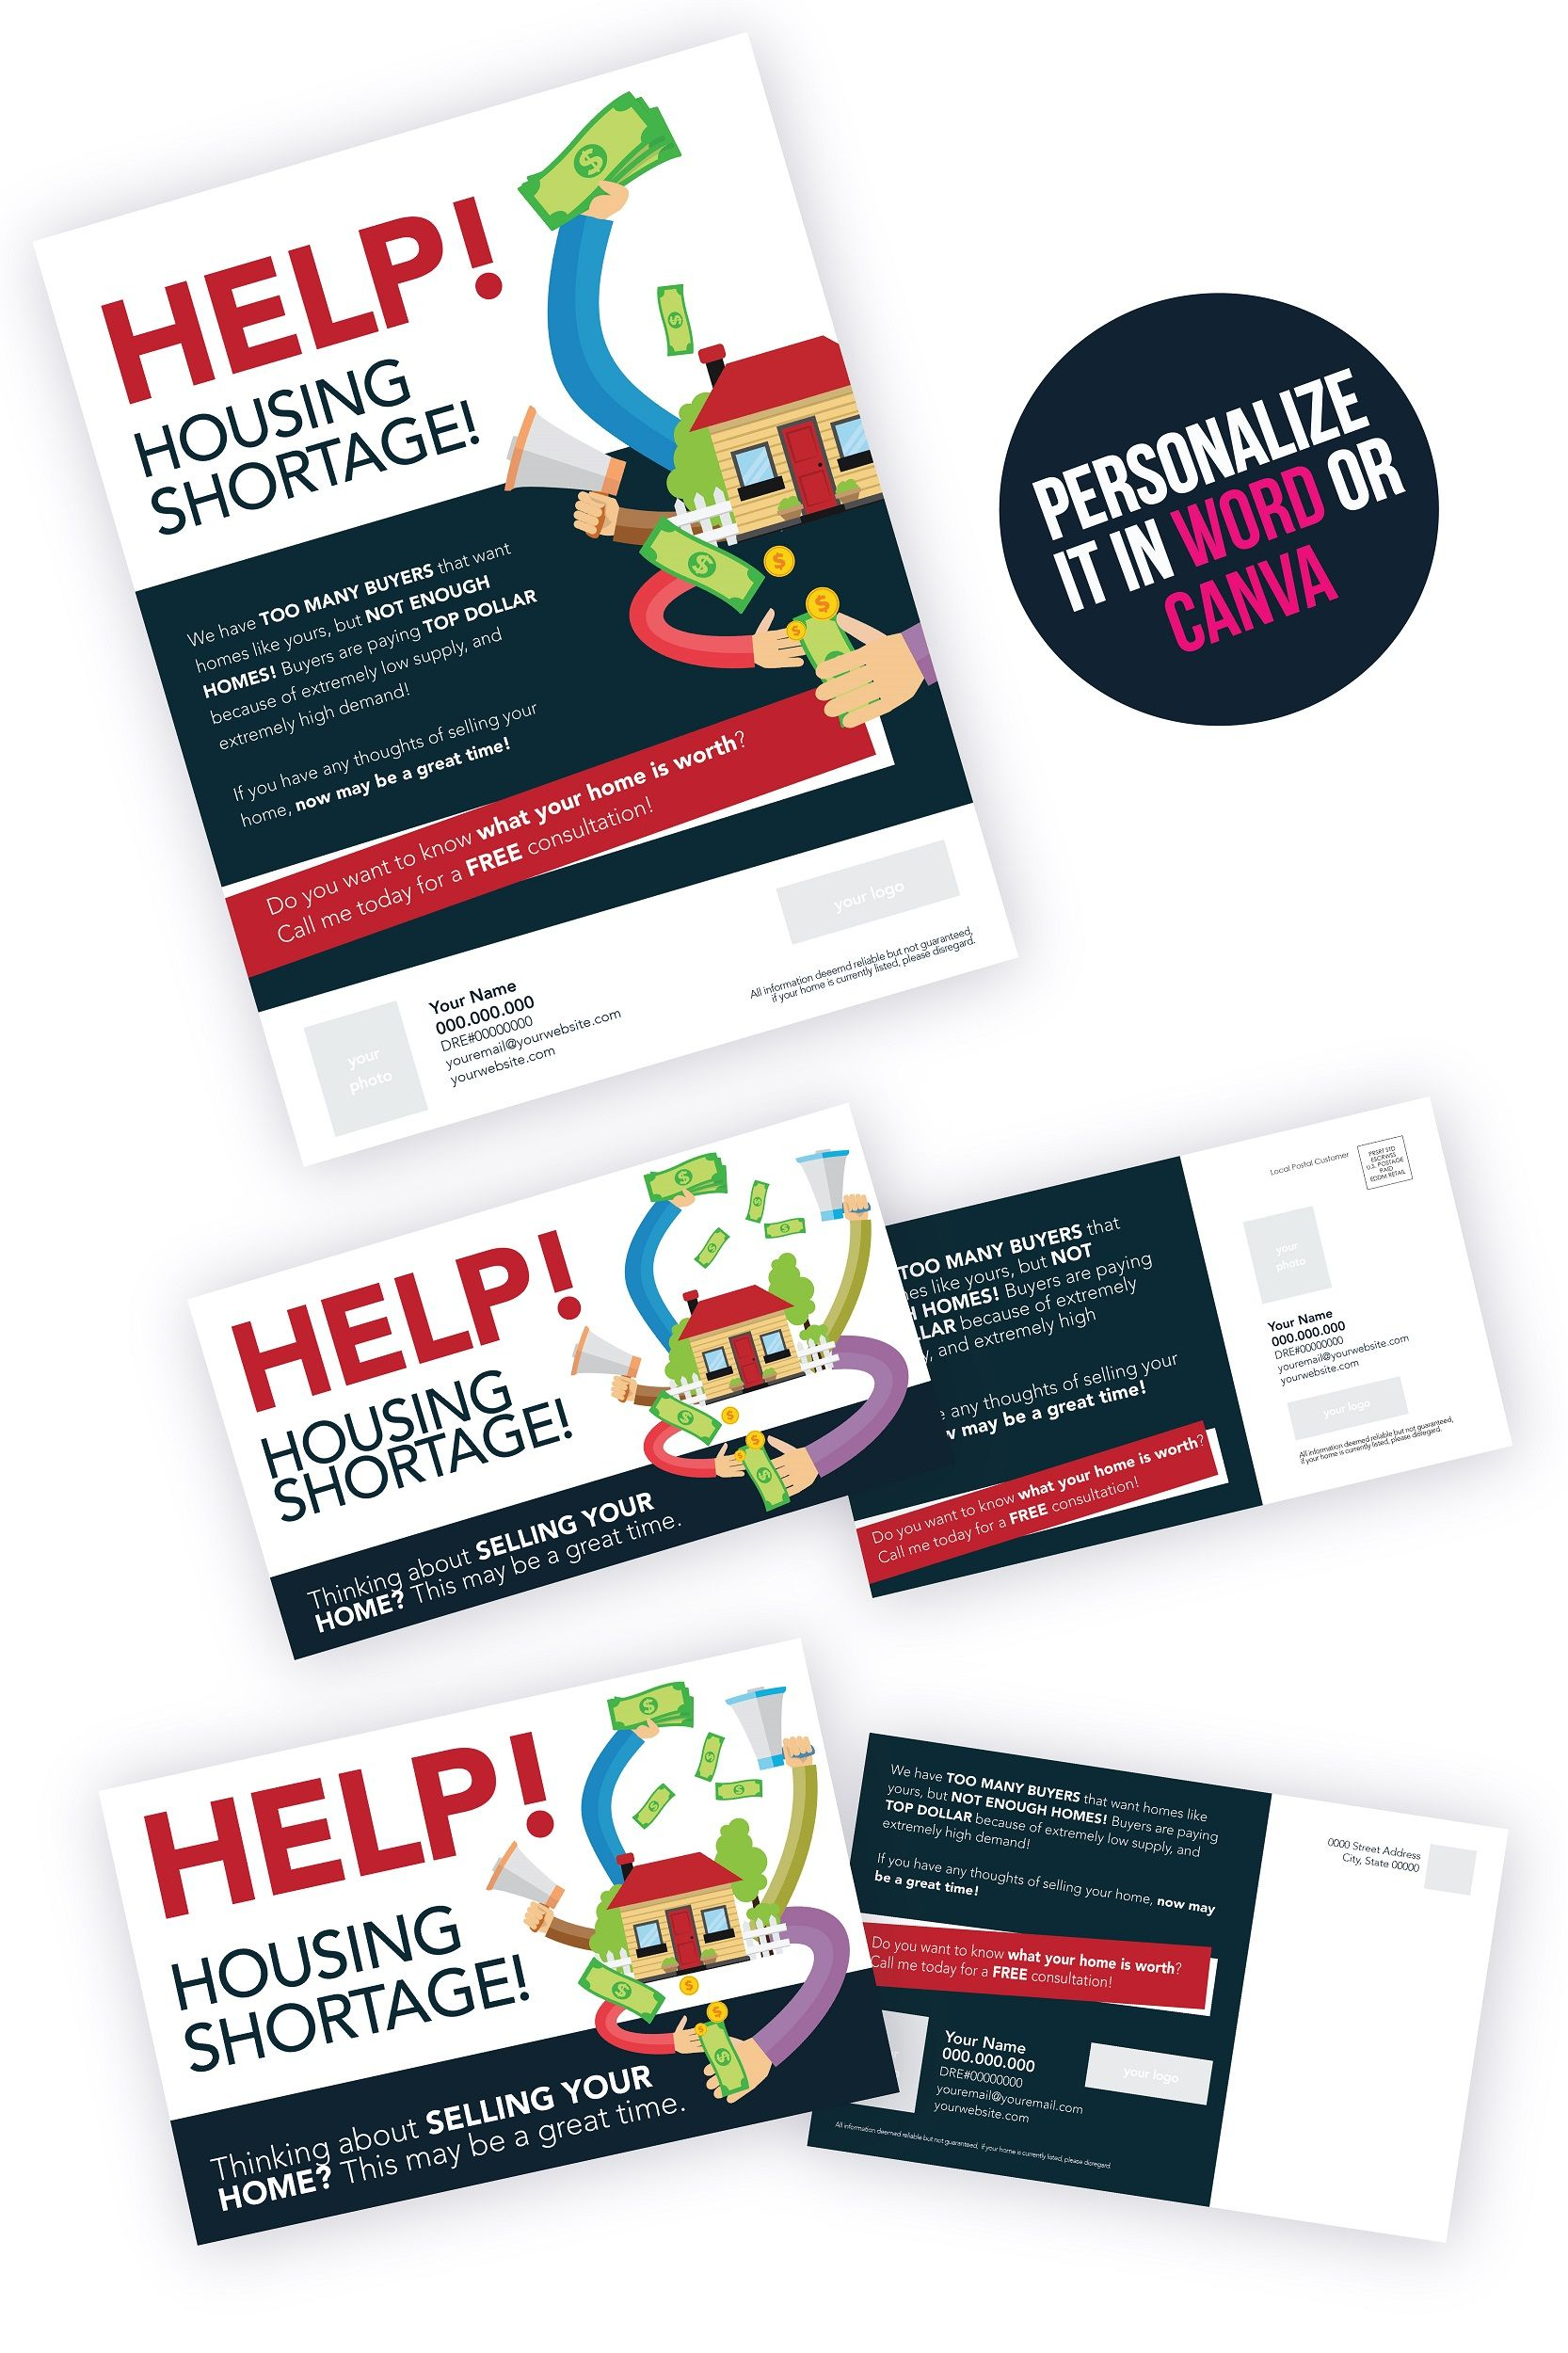 Realtor Marketing Real Estate Agent Marketing Ideas The Real Estate Market Is Hot Postcard Template And Flyer Template For A Realtor In 2021 Real Estate Marketing Postcards Real Estate Agent Marketing